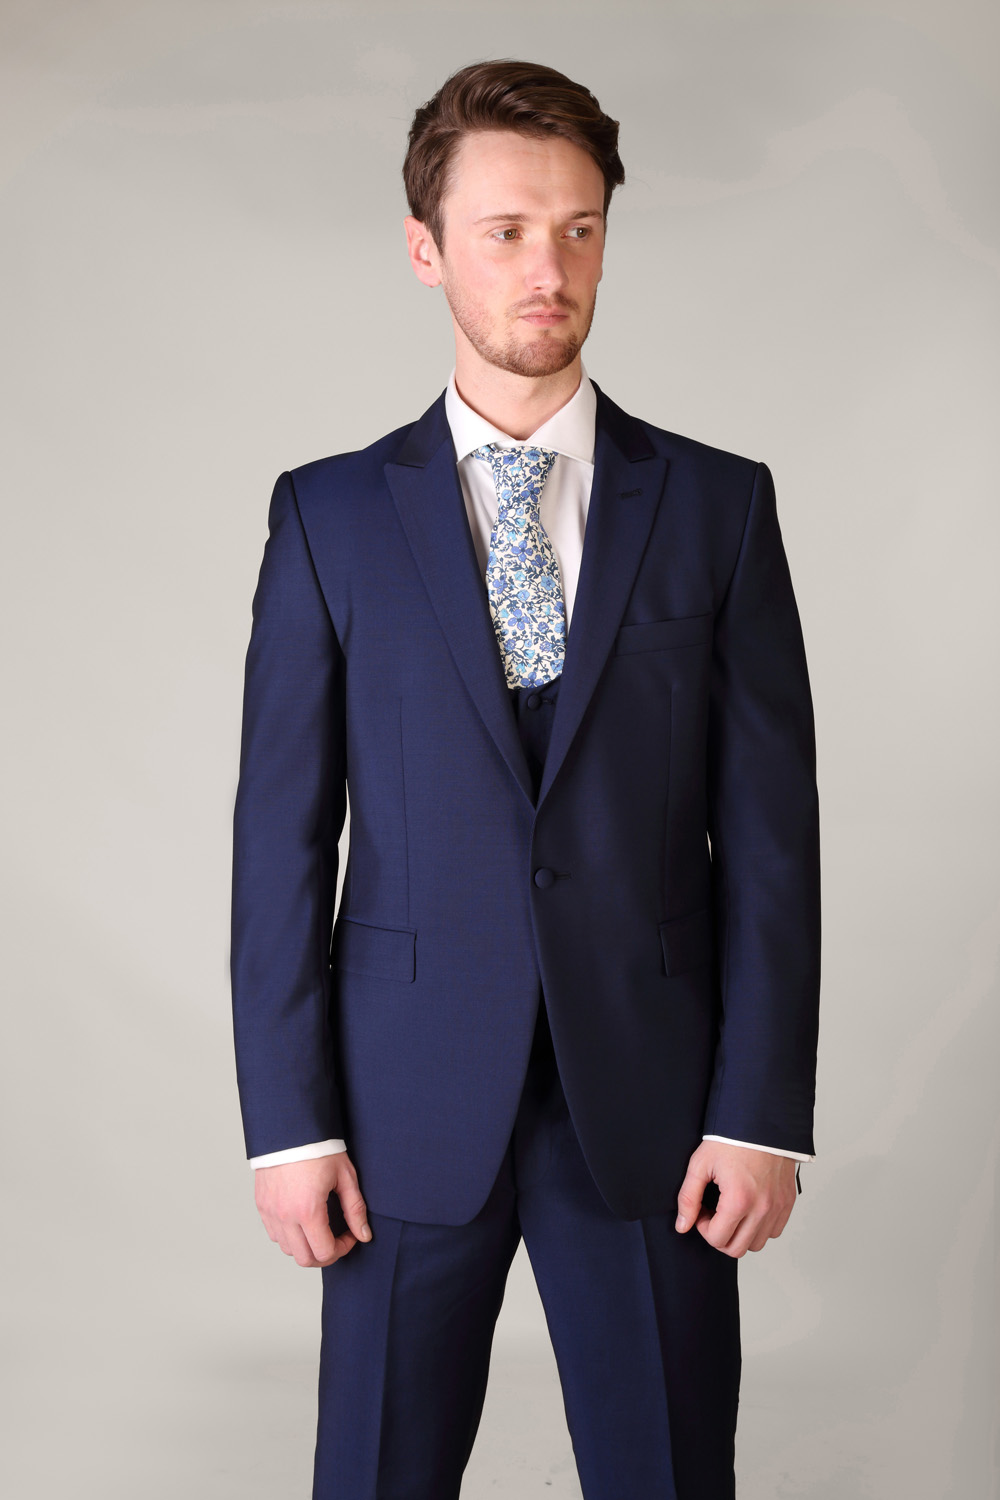 Shop blue suit and waistcoatfrom Fashionmia online store. You can definitely find the blue suit and waistcoatyou are into with big discounts. Now discover blue suit and waistcoat here and start find your own fashion style.